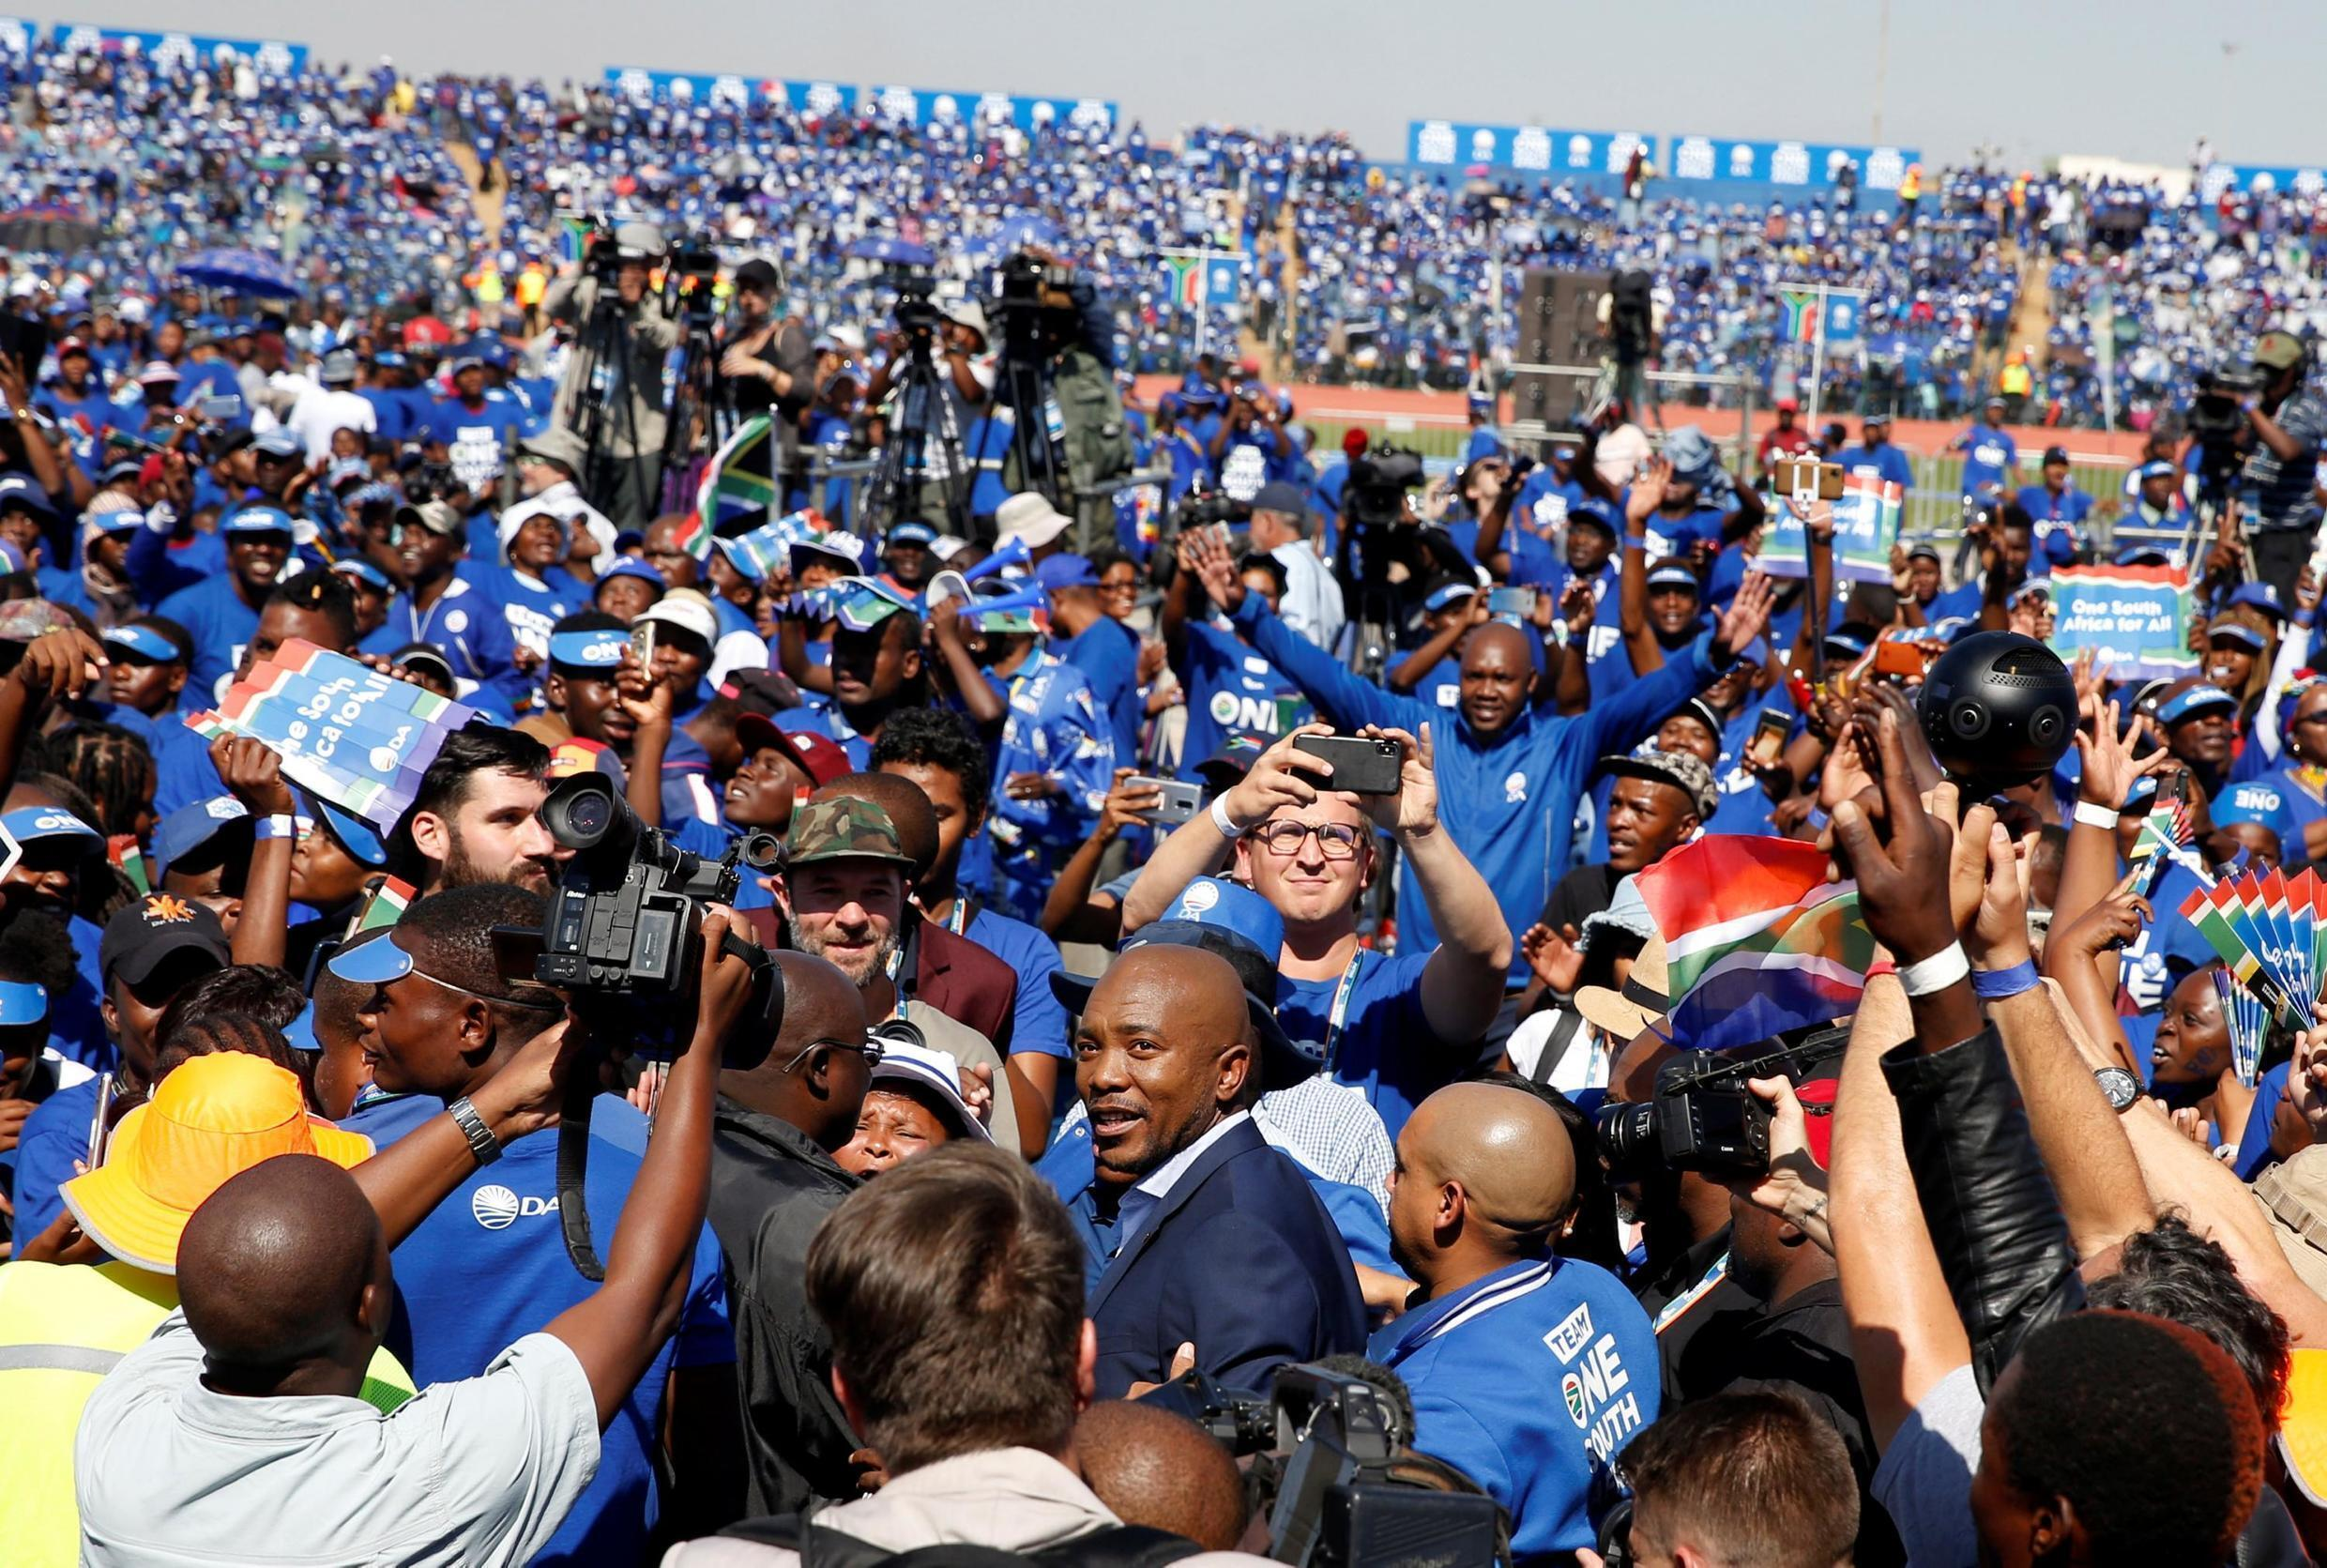 Mmusi Maimane, surrounded by supporters, at a Democratic Alliance rally in Soweto, Johannesburg, 4 May 2019.